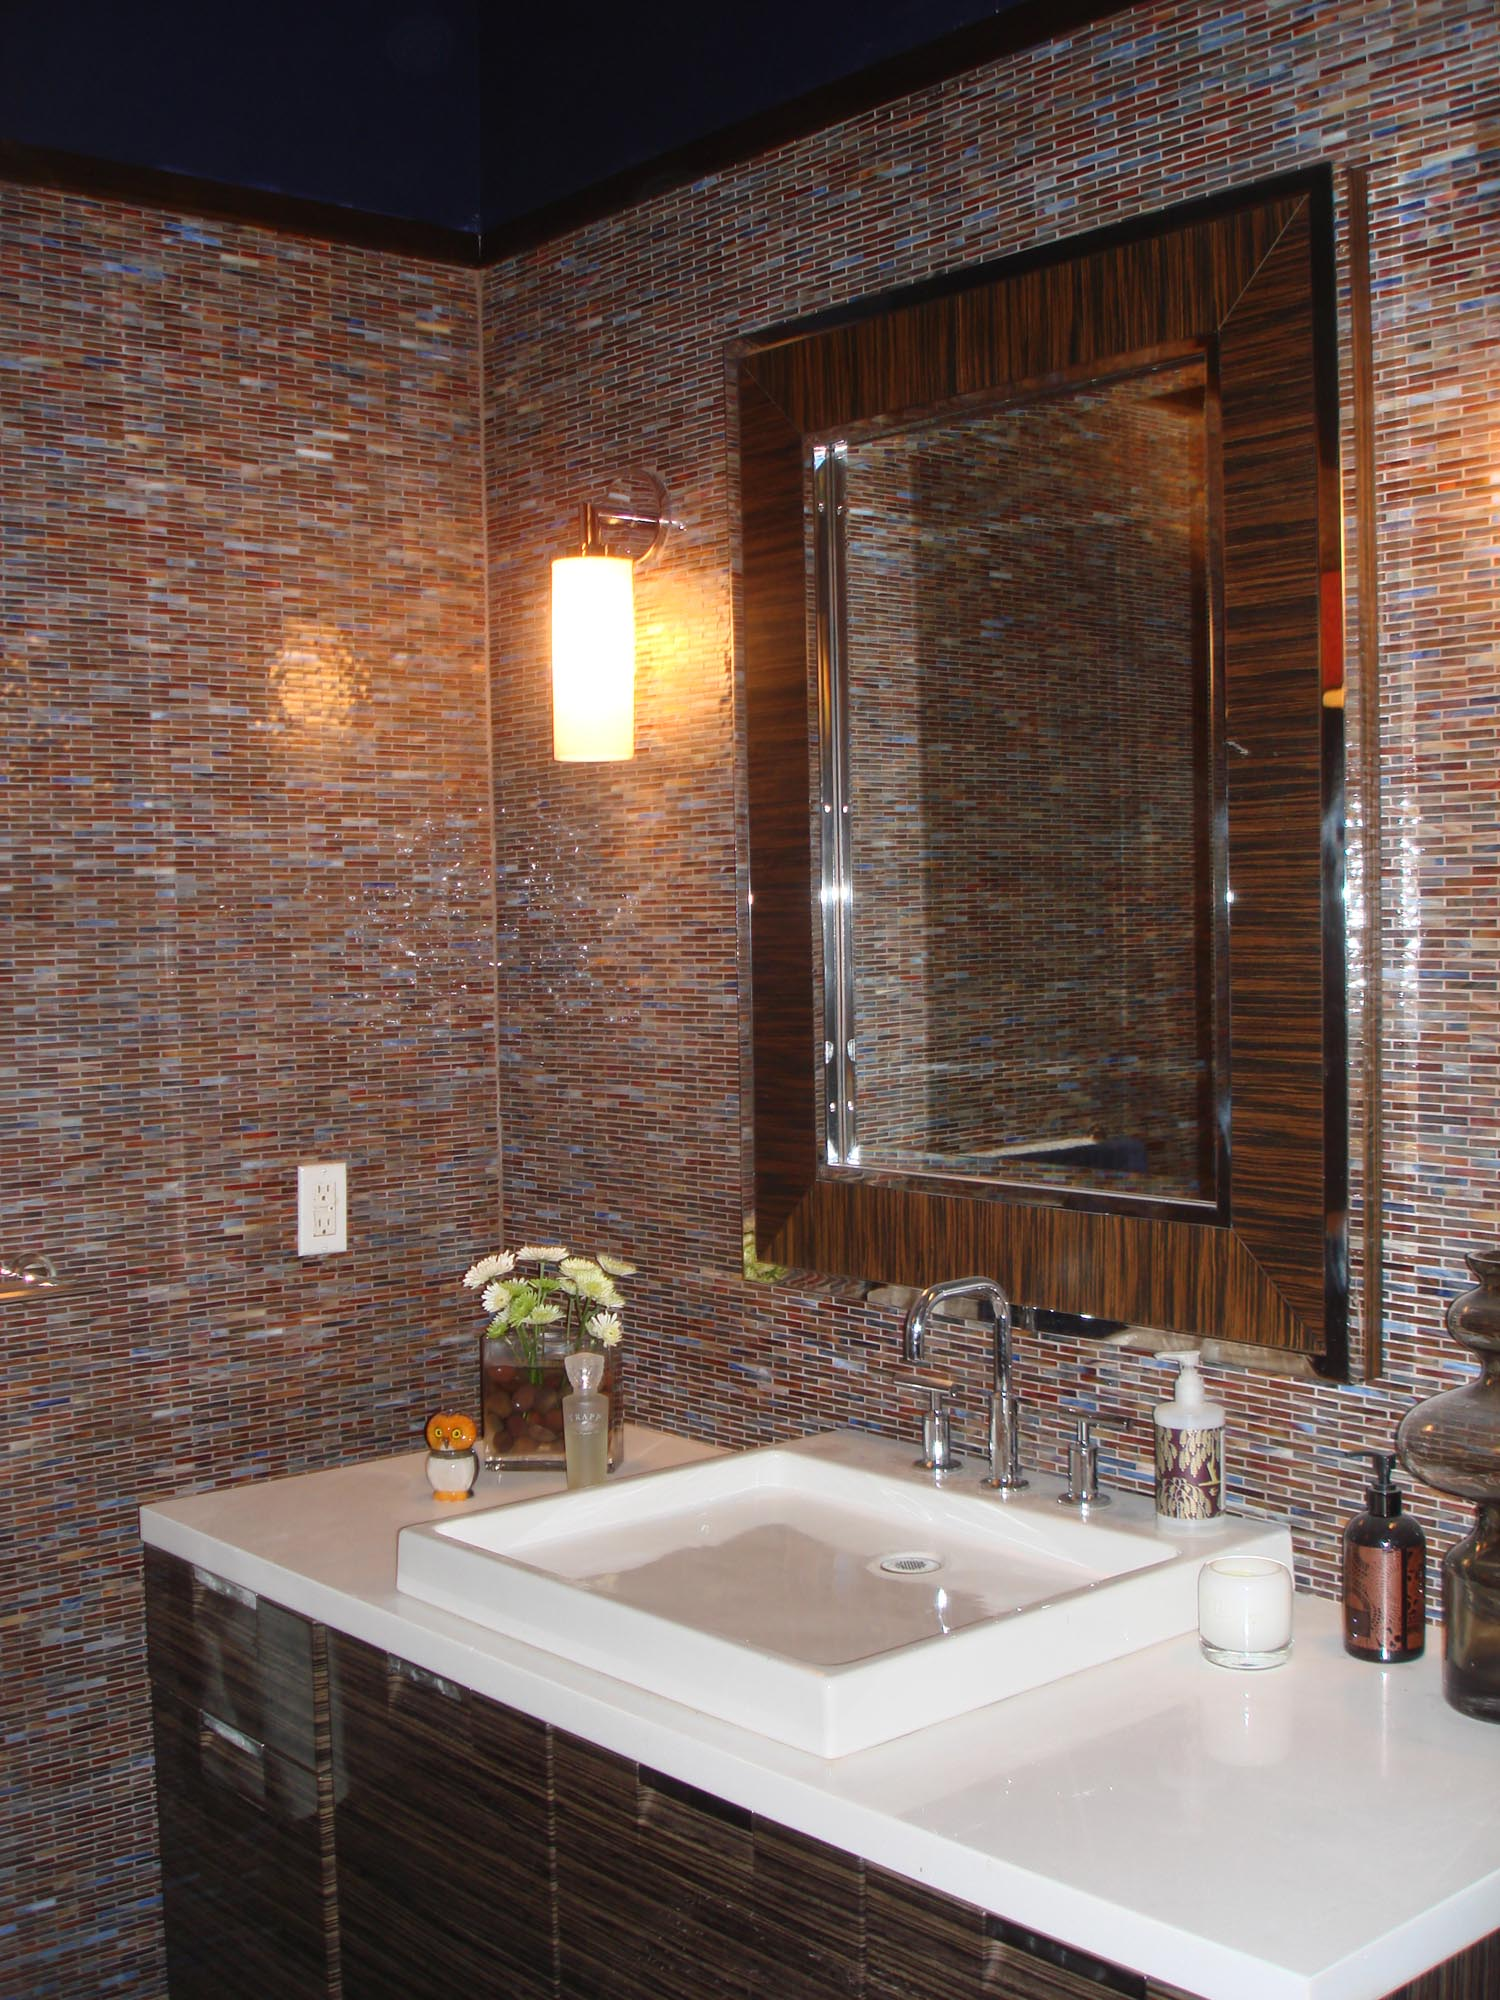 Glass mossaic tile bathroom with steam shower and niche   New Jersey ...